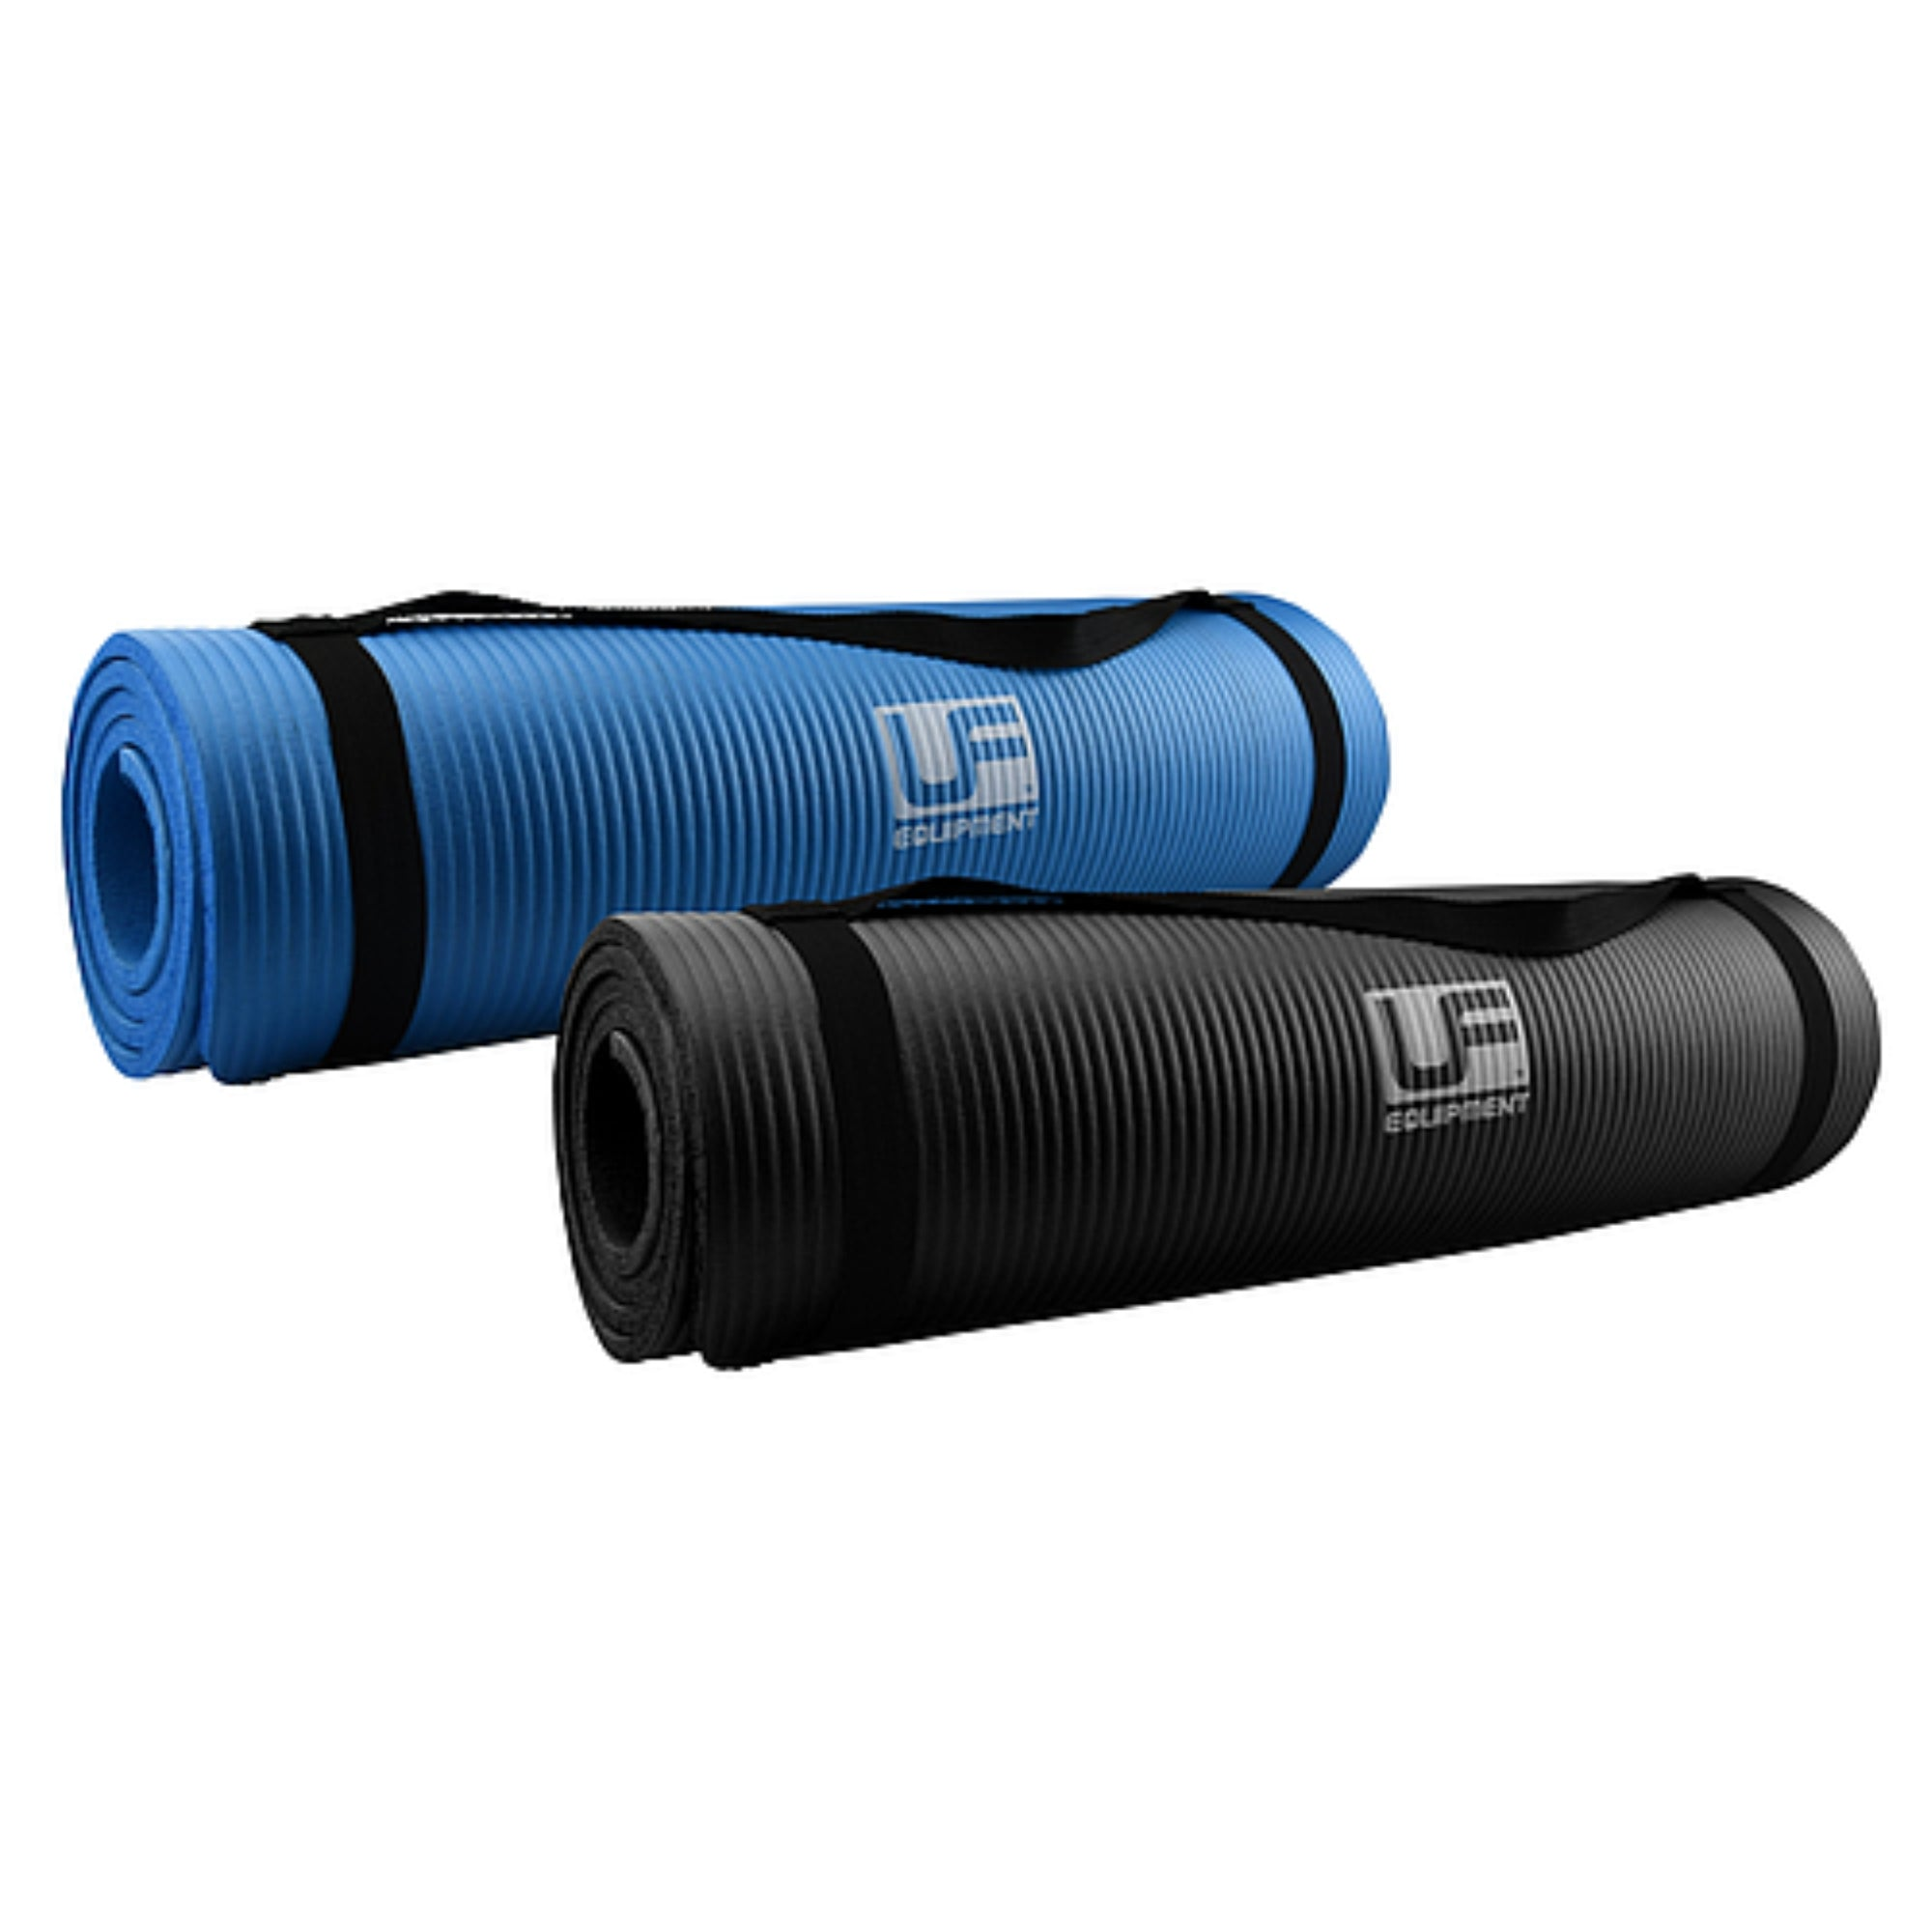 UFM110 UFE NBR Fitness Mats rolled up in blue and black